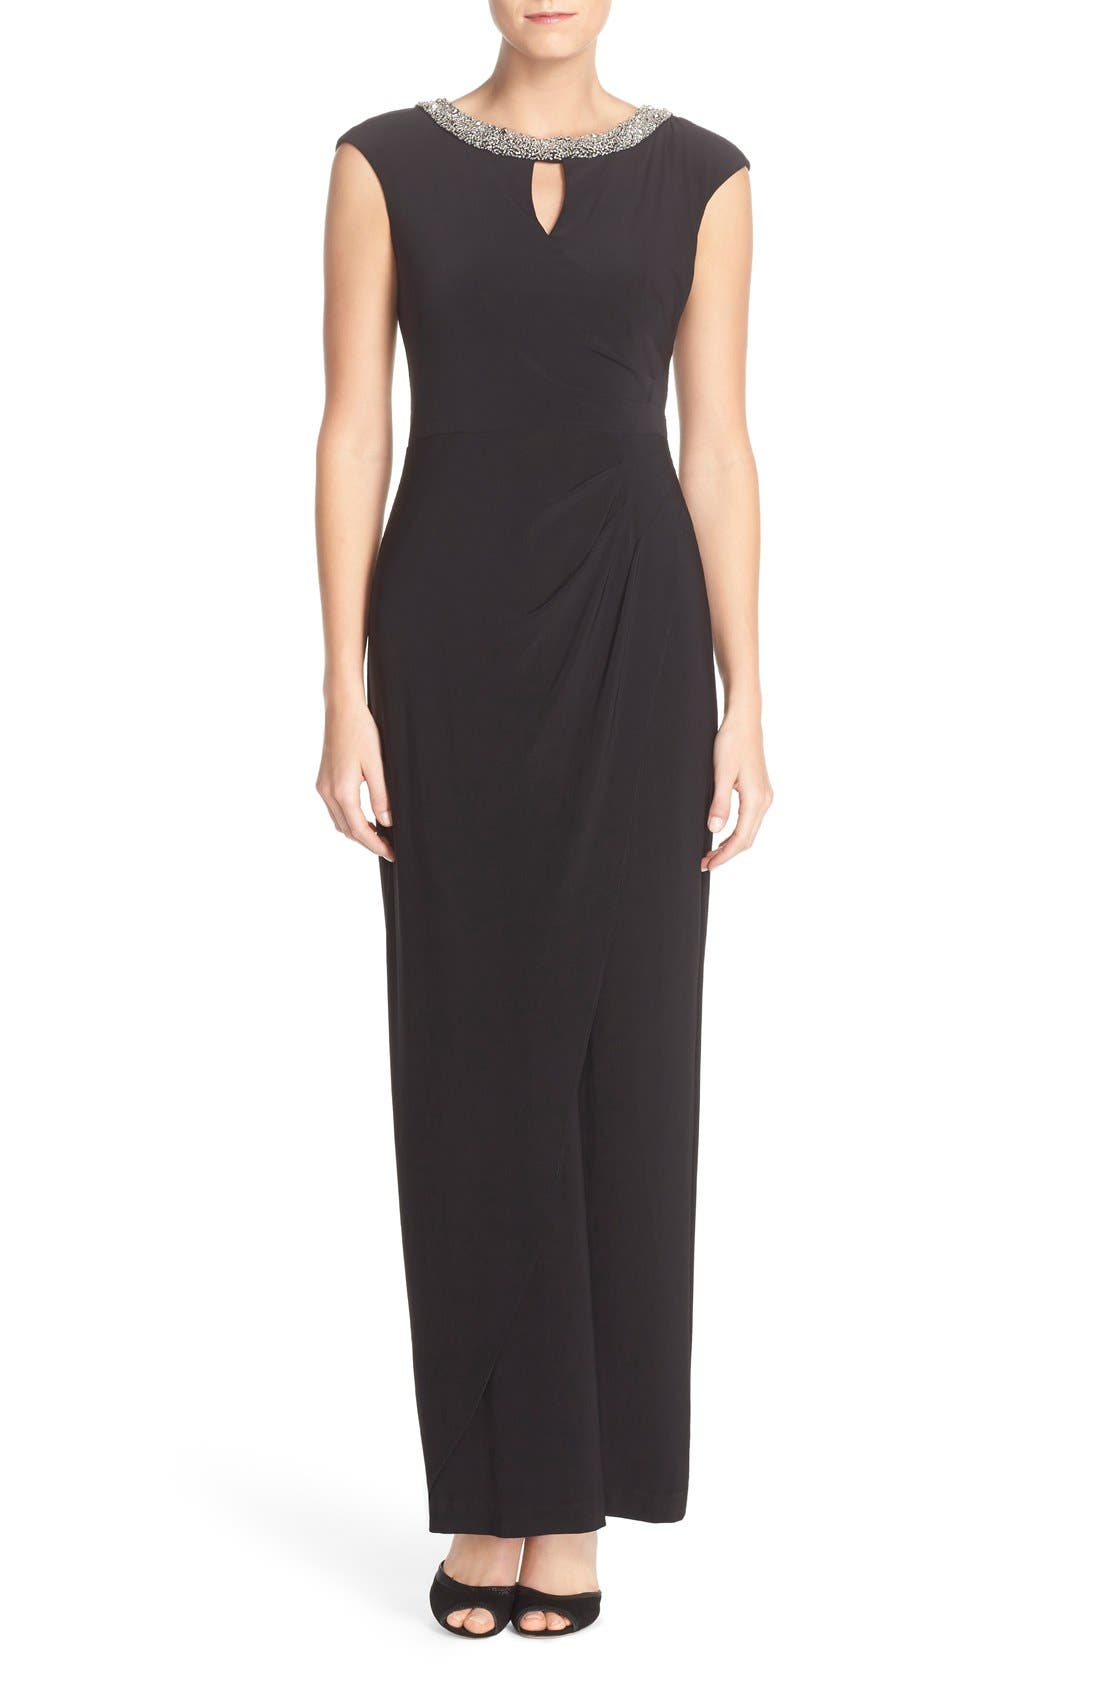 Main Image - Alex Evenings Beaded Neck Ruched Jersey Gown (Regular & Petite)